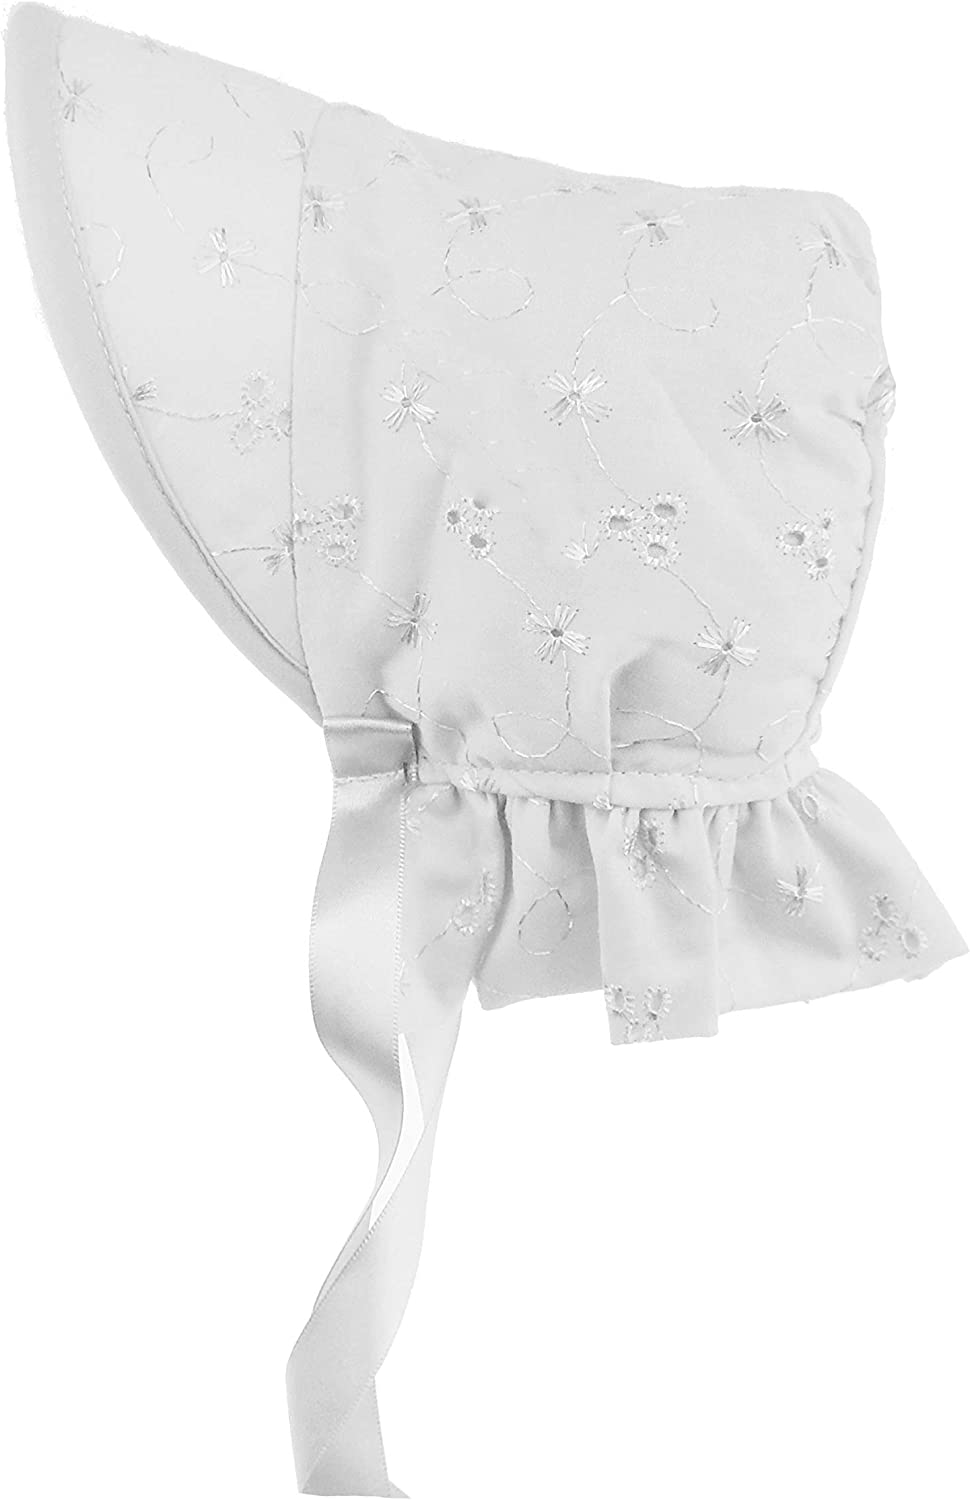 0-3 Months, Pink Glamour Girlz Beautiful Baby Girls Broderie Anglais Ribbon Lace Fringe Trim Baby Bonnet Beanie Sun Hat